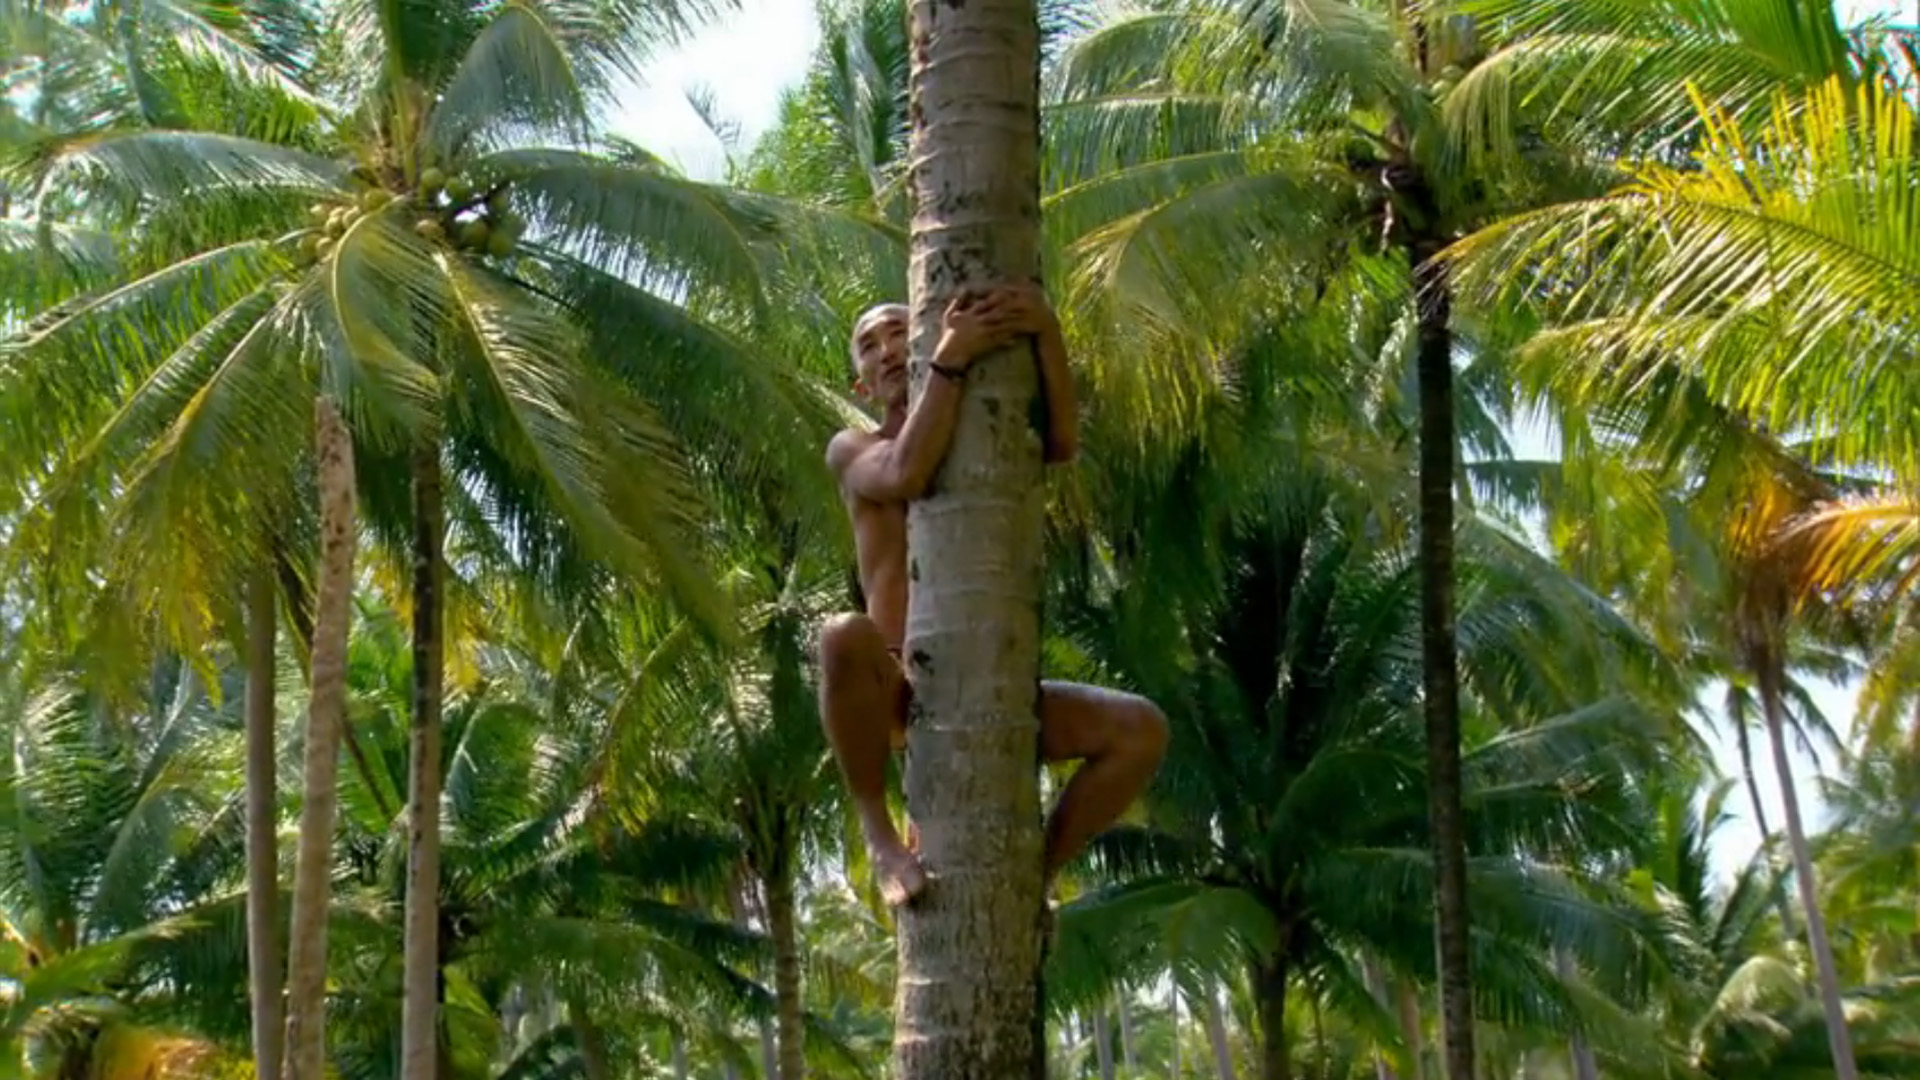 Episode 2: Tai scorches his skin while climbing up a palm tree.